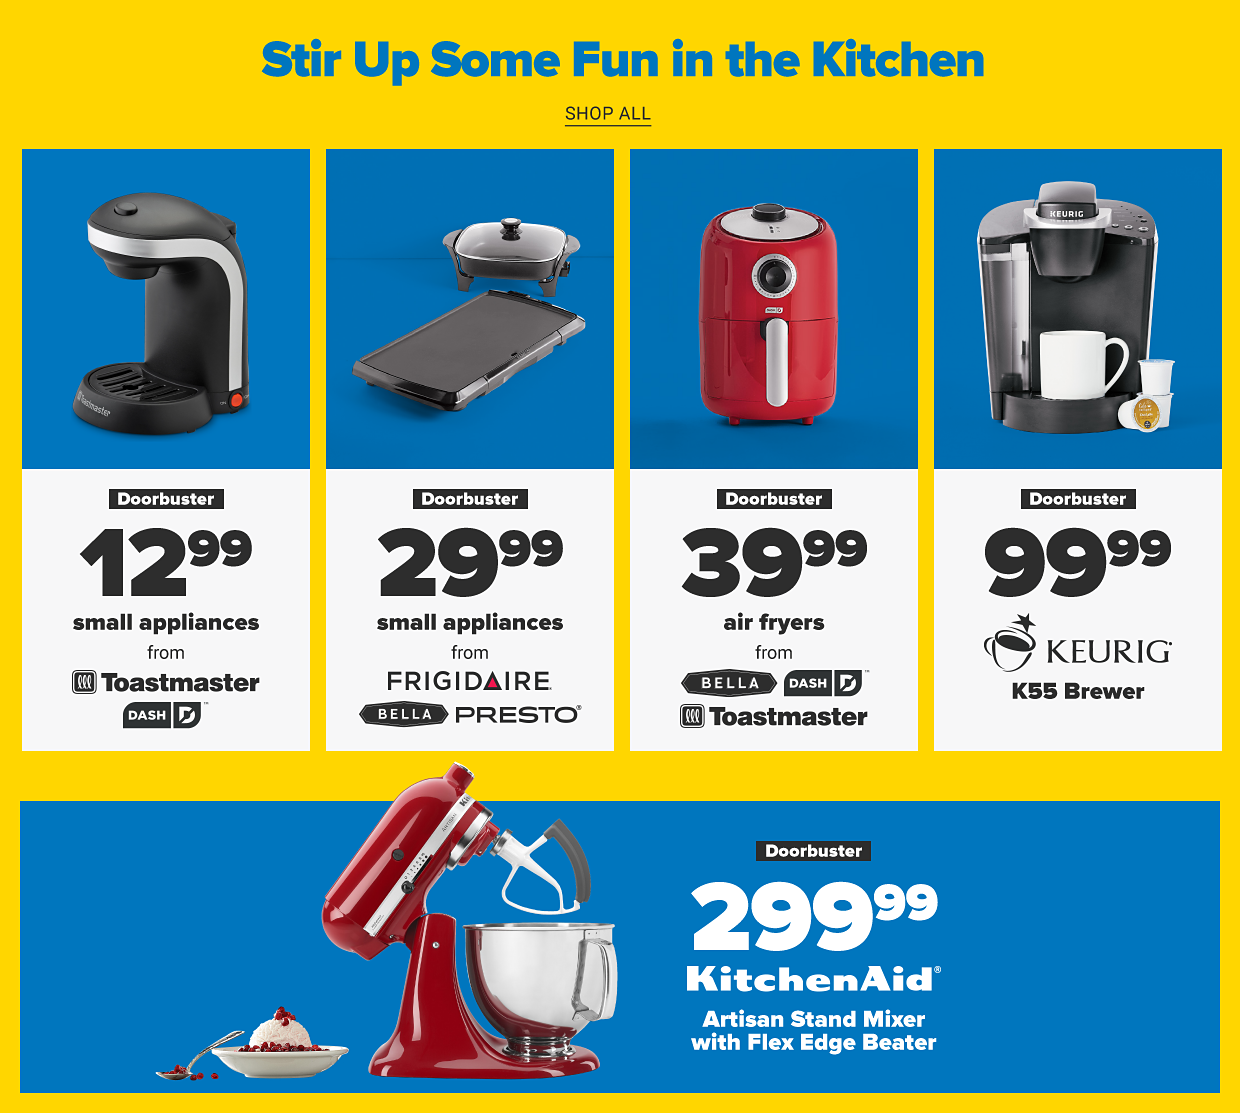 Belk Days. Up to 80% off doorbusters. Shop all doorbusters. Stir up some fun in the kitchen. Shop all. A toaster. Doorbuster. 12.99 small appliances from Toastmaster and Dash. Two small kitchen appliances. Doorbuster. 29.99 small appliances from Frigidaire, Bella and Presto. A red air fryer. Doorbuster. 39.99 air fryers from Bella, Dash and Toastmaster. A Keurig coffee maker. Doorbuster. 99.99 Keurig K55 Brewer. A red mixer with a stainless steel bowl. Doorbuster. 249.99 KitchenAid artisan stand mixer with flex edge beater.